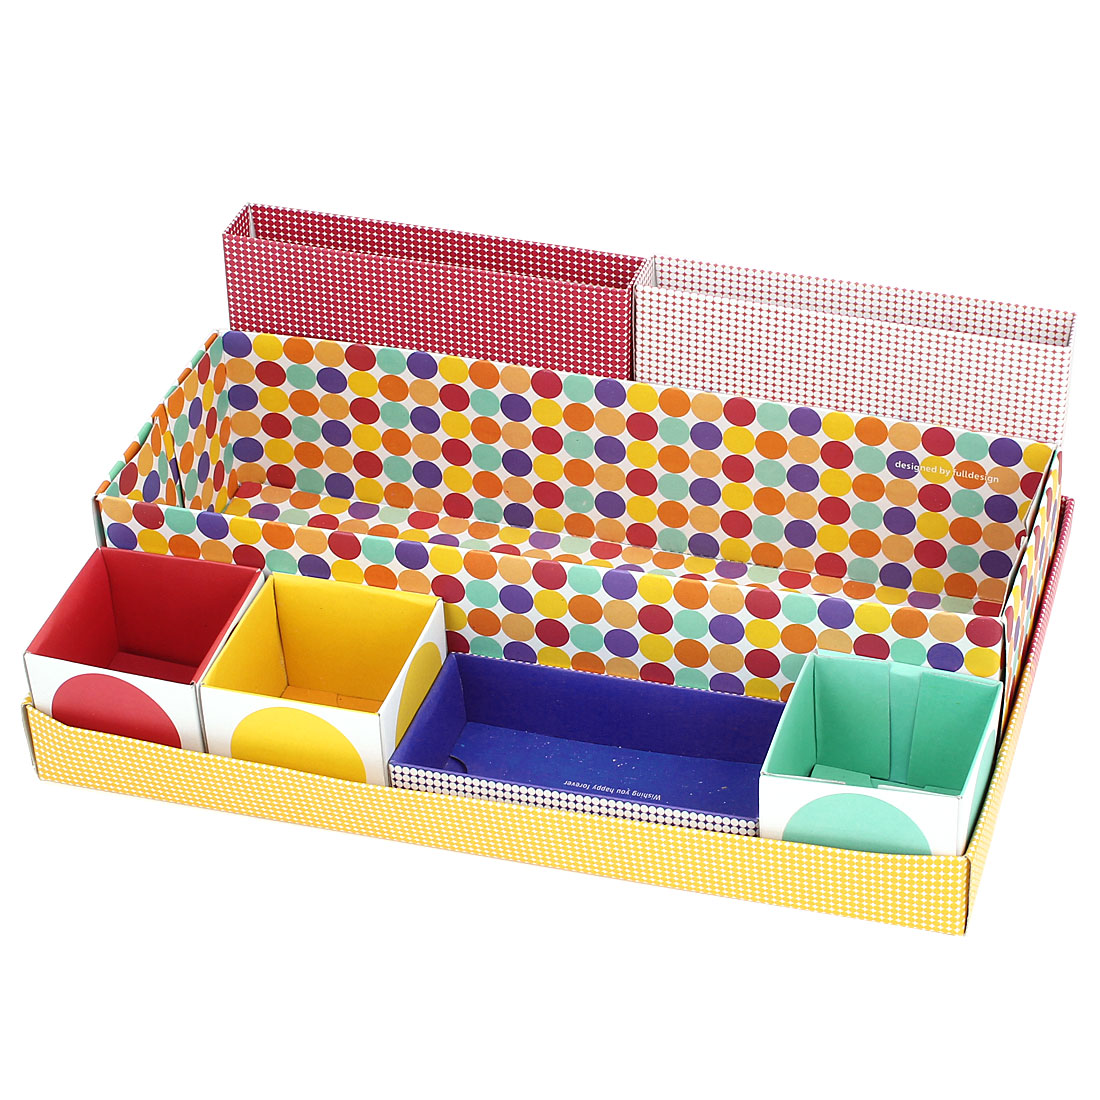 Dots Pattern 7 in 1 Compartments Cosmetics Makeup Tools Storage Box Divider Organizer Colorful